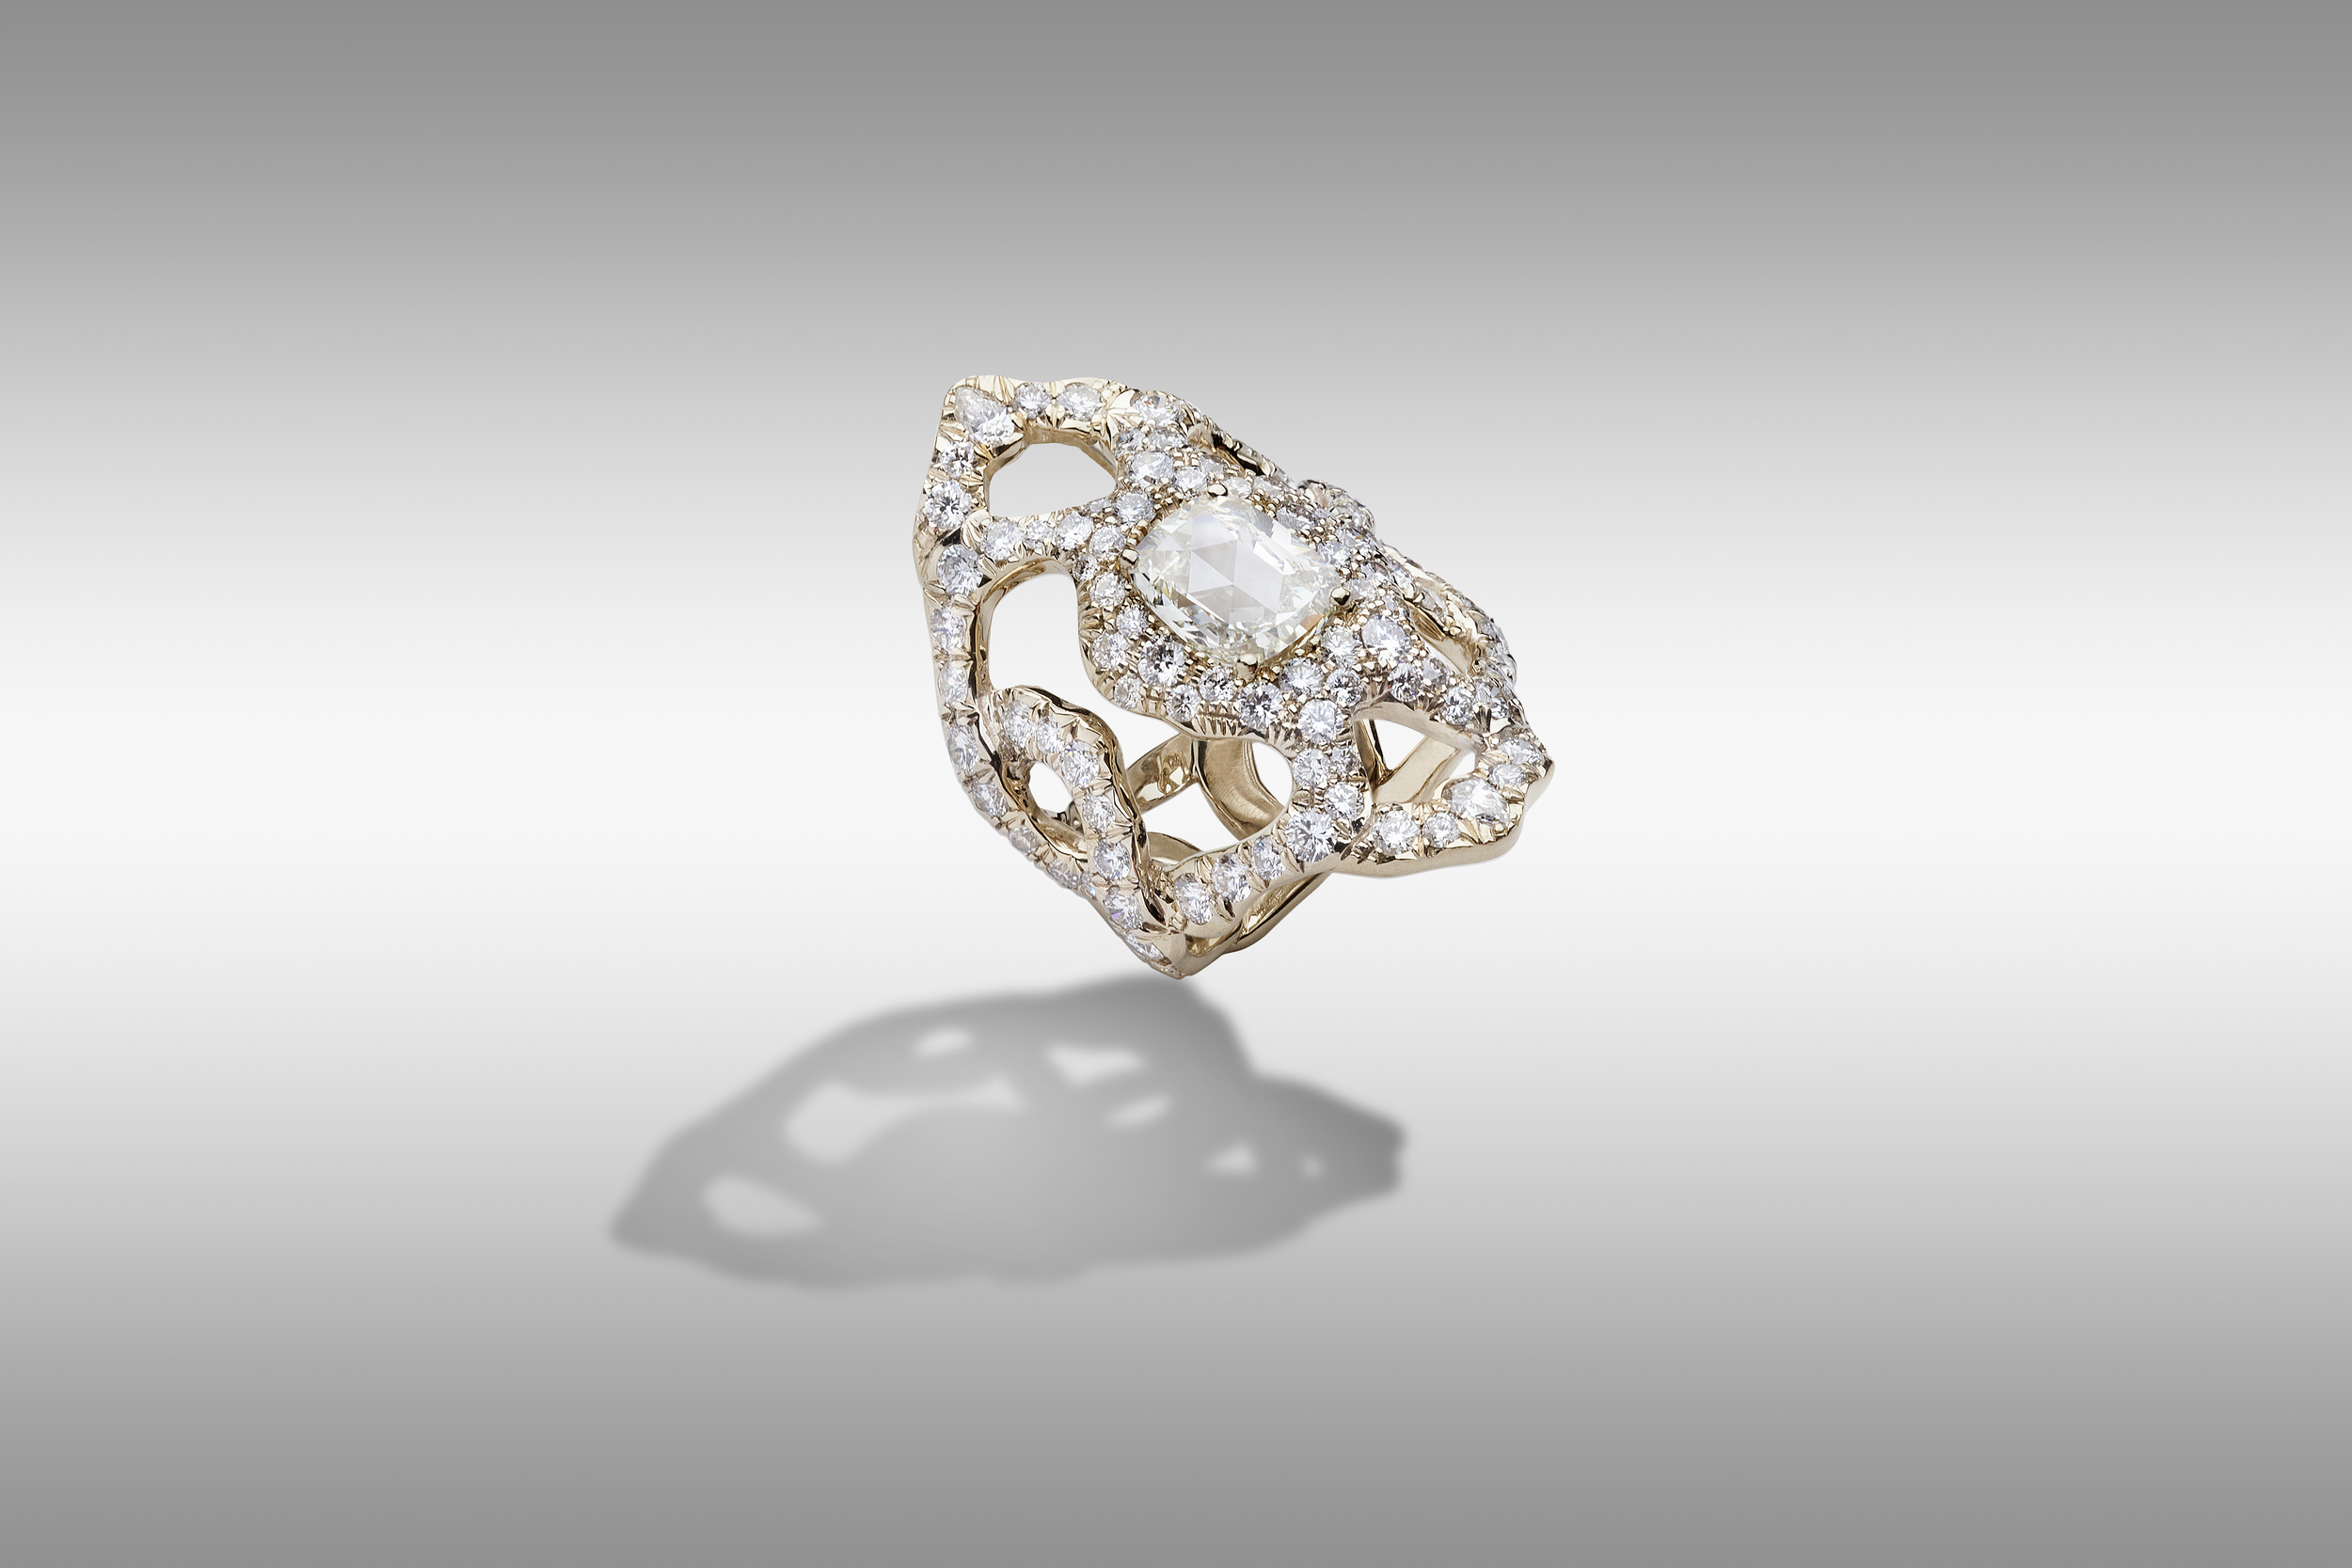 Rossella gray gold ring 18 ct. with diamonds